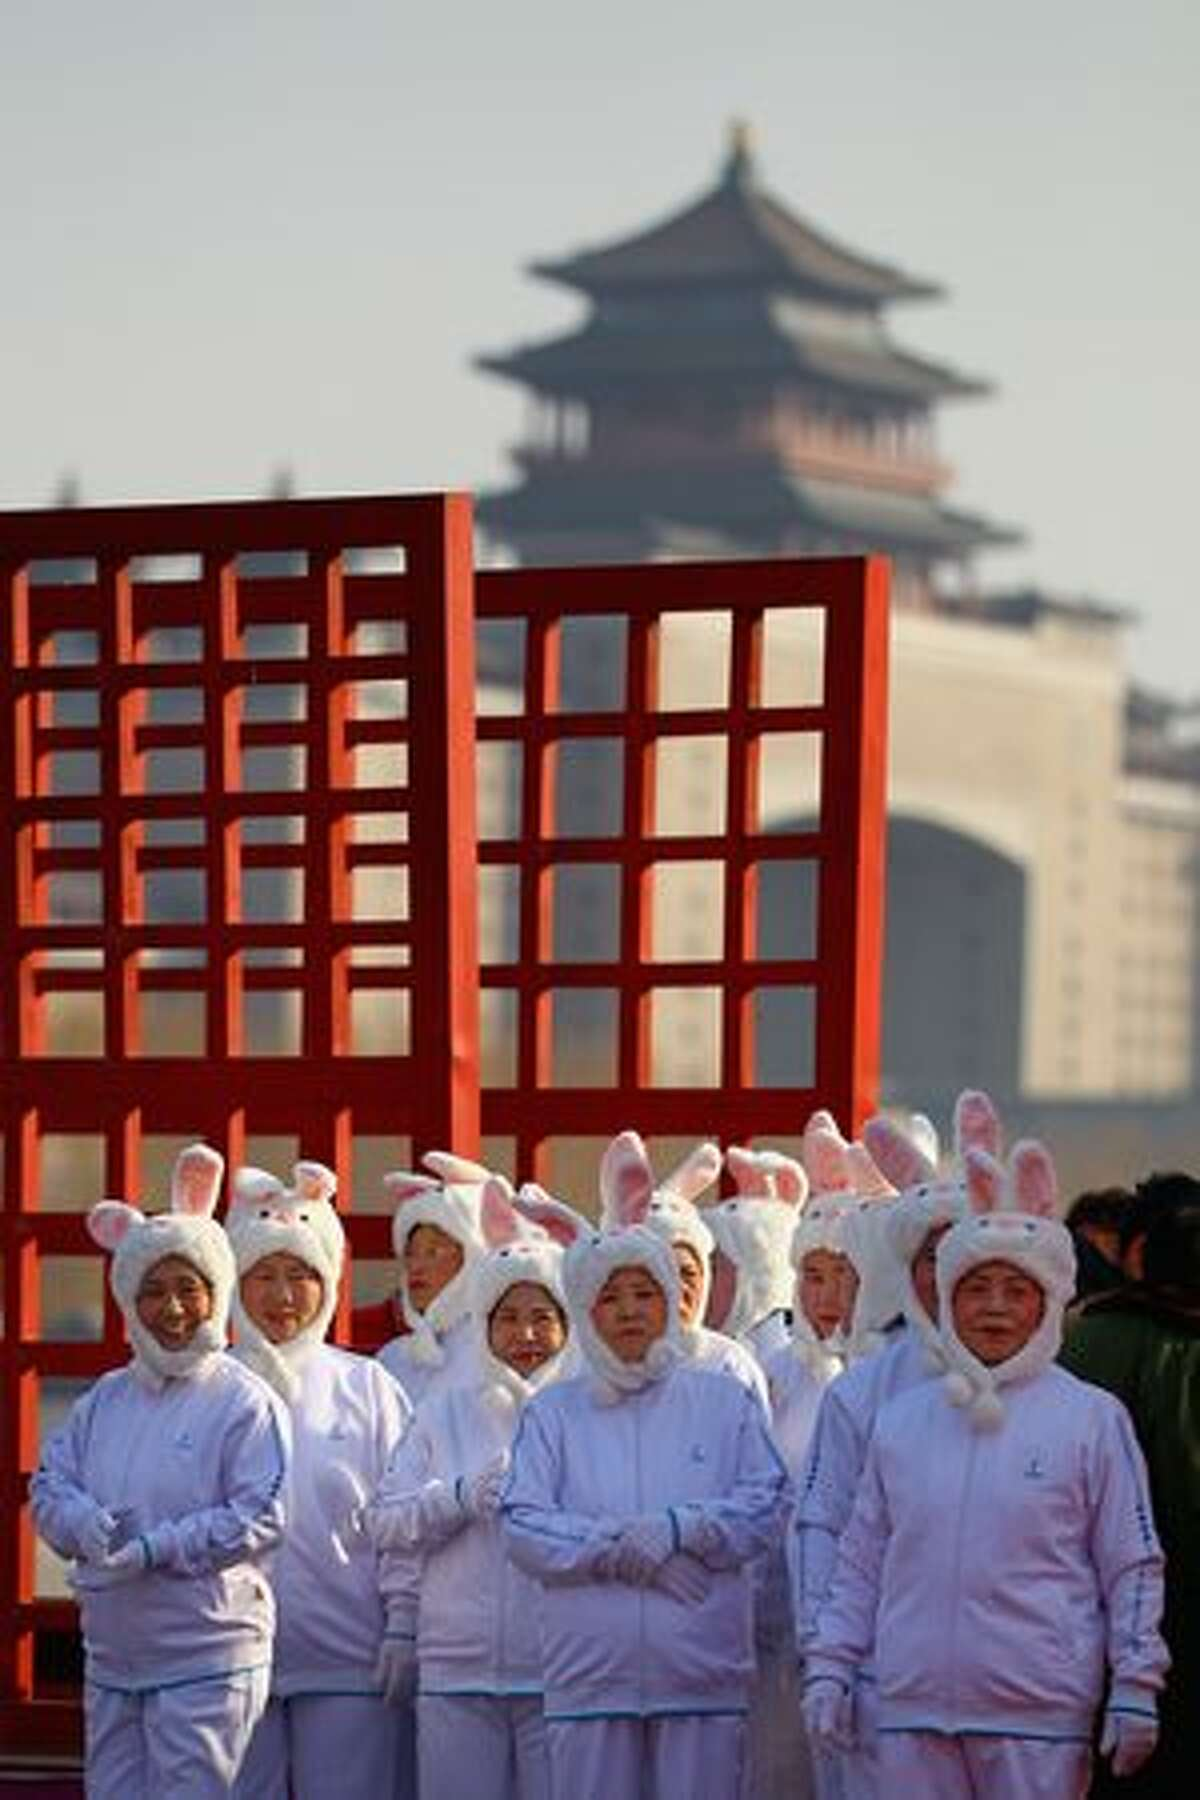 Chinese folk artists dressed in rabbit costume prepare to perform at a temple fair to celebrate the Lunar New Year of Rabbit in Beijing, China.